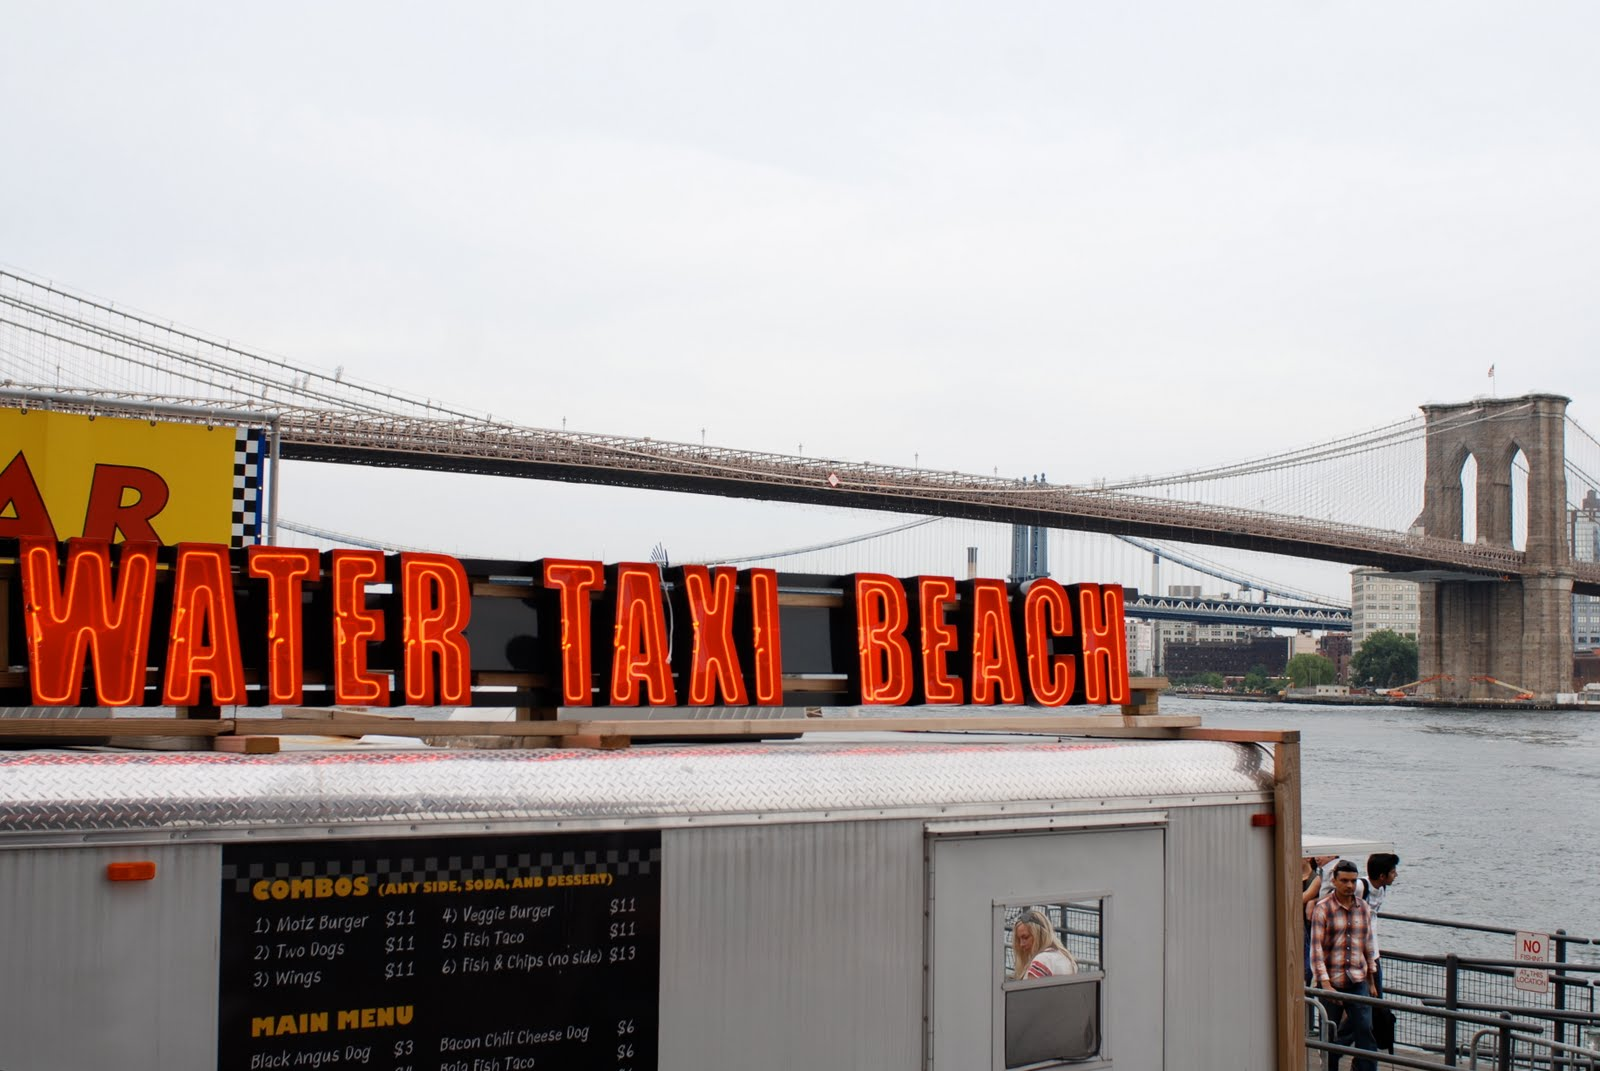 Water Taxi Beach U0026 Beer Garden South Street Seaport Is An  18,000 Square Foot